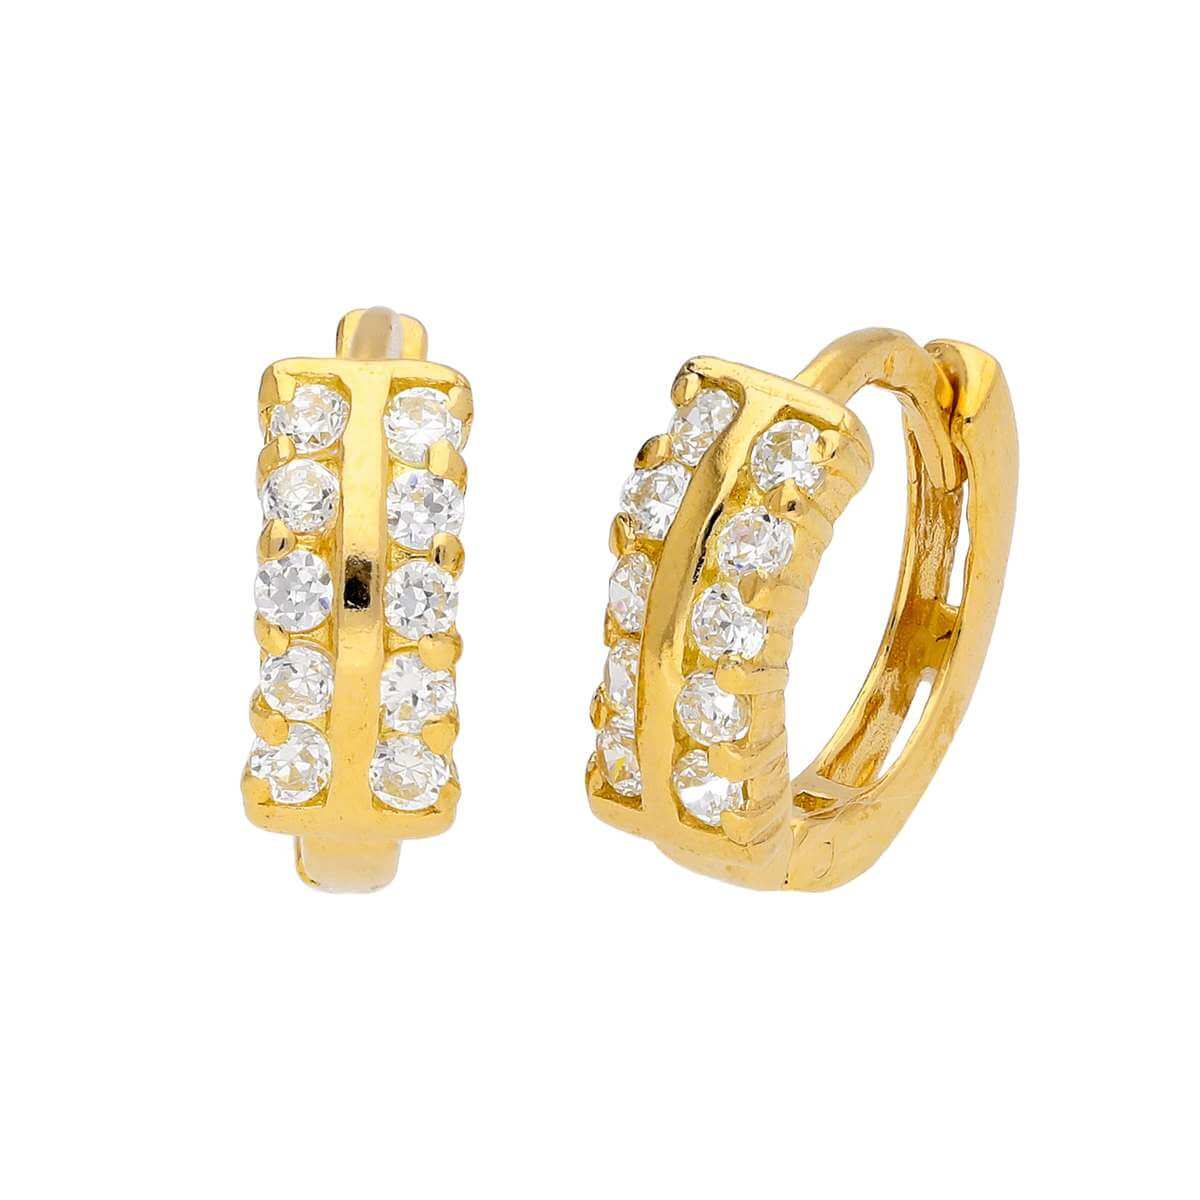 Small Gold Plated Sterling Silver CZ Huggie 13mm Hoop Earrings